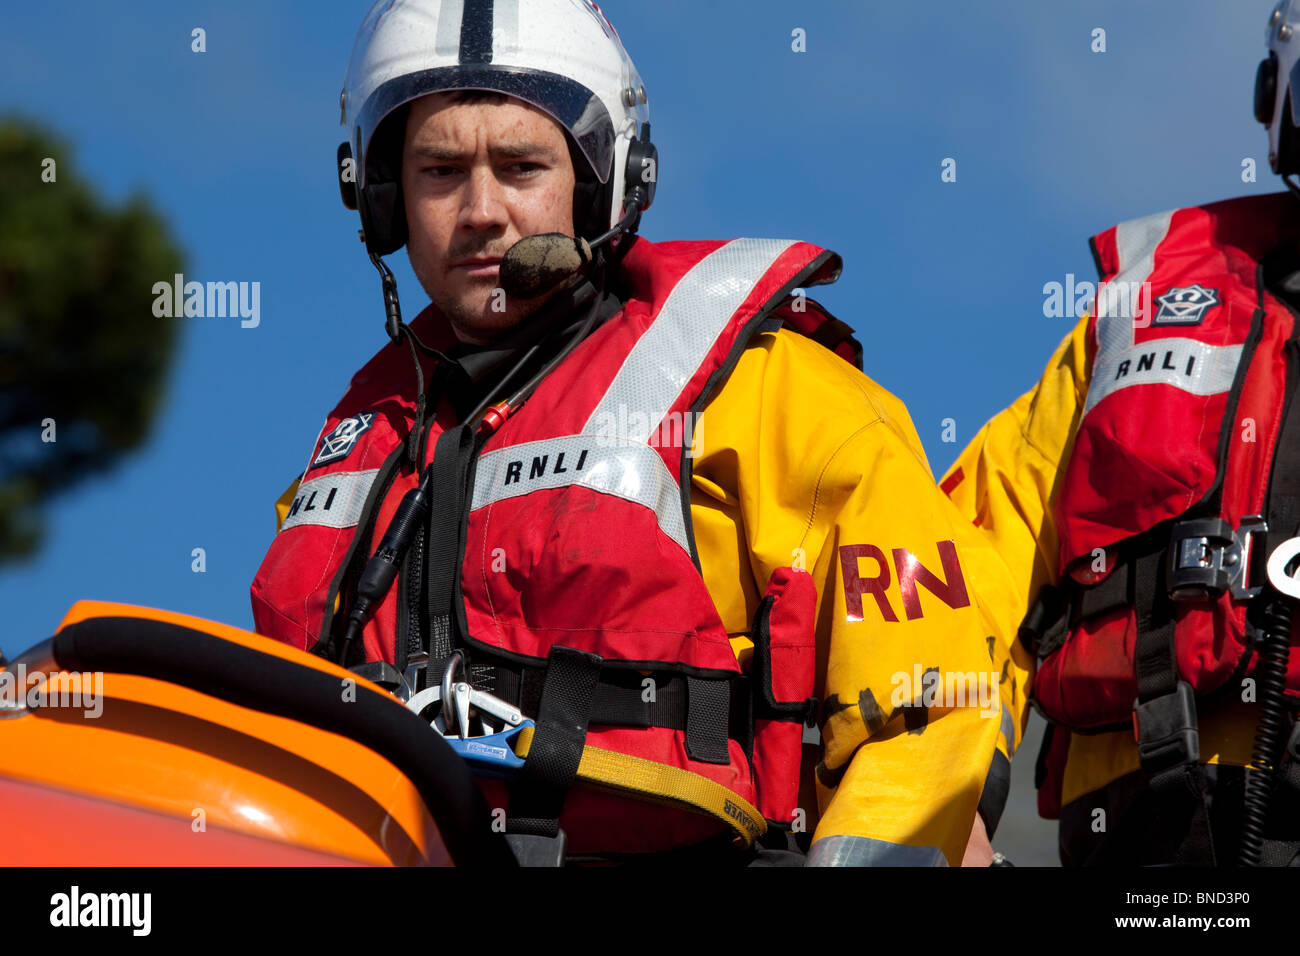 Rescue worker of the Royal National Lifeboat Institute (RNLI) on a training exercise. - Stock Image